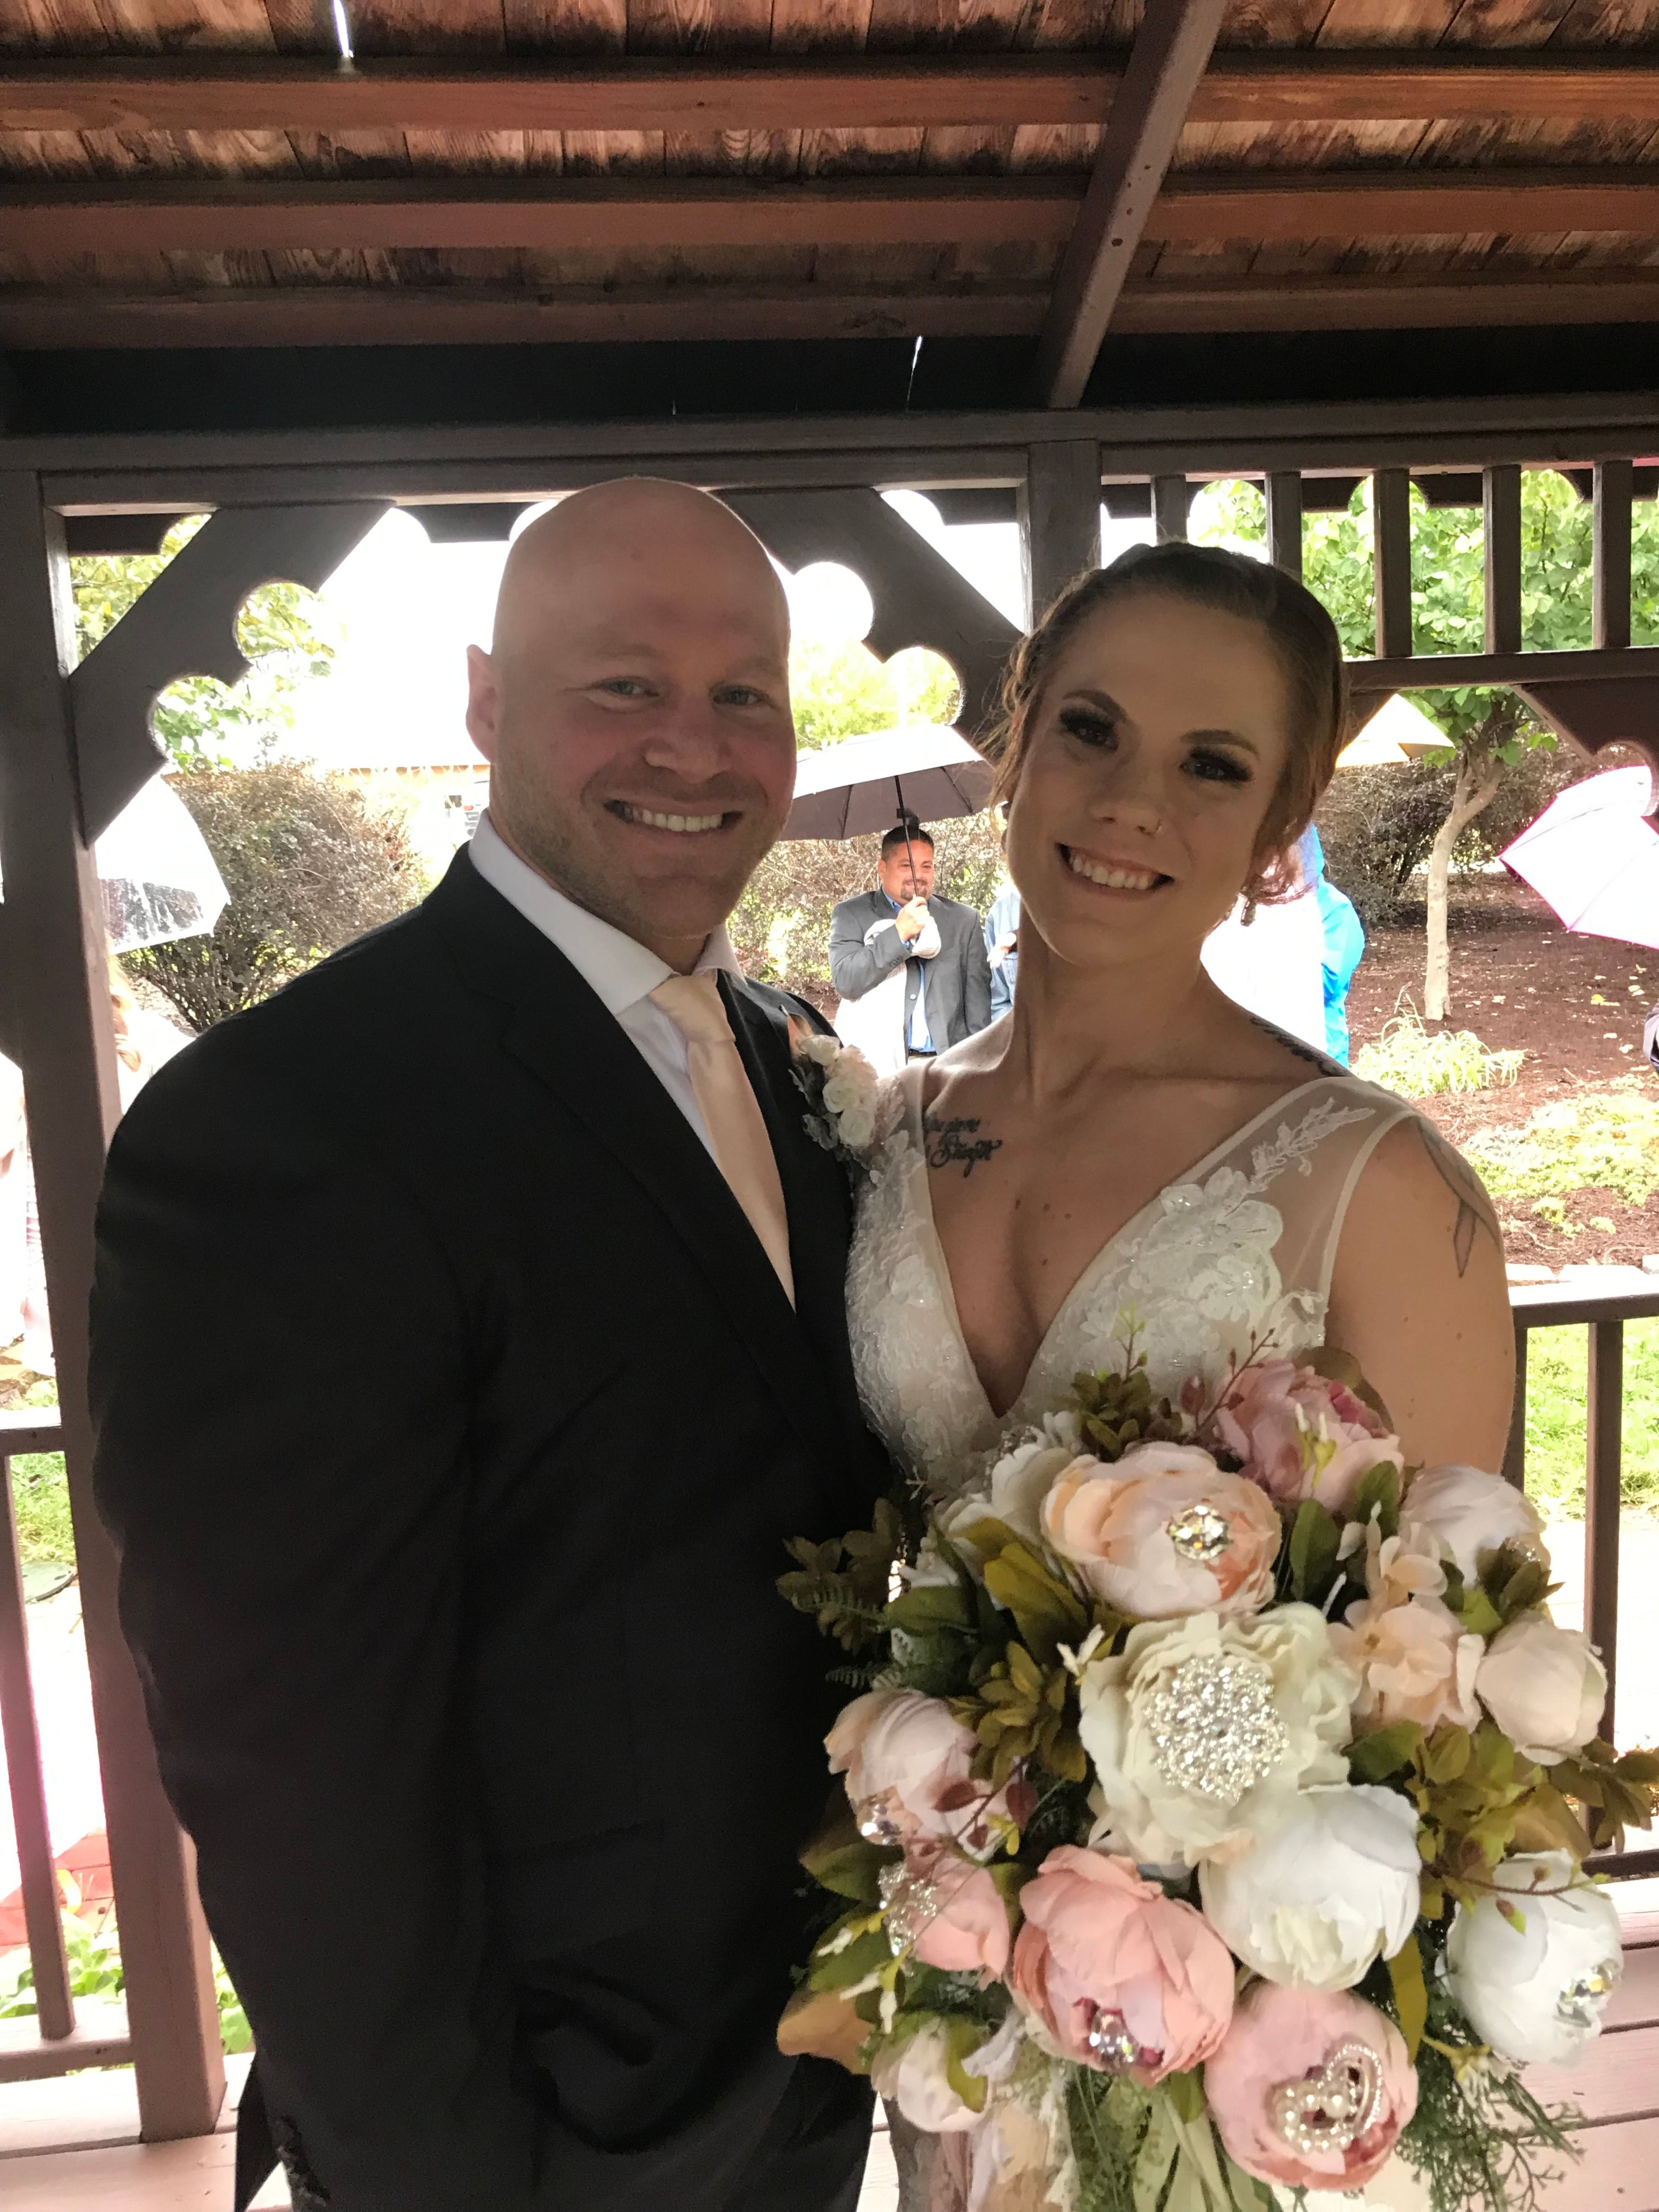 Alyssa and Steven Wedding officiant, Ceremony design